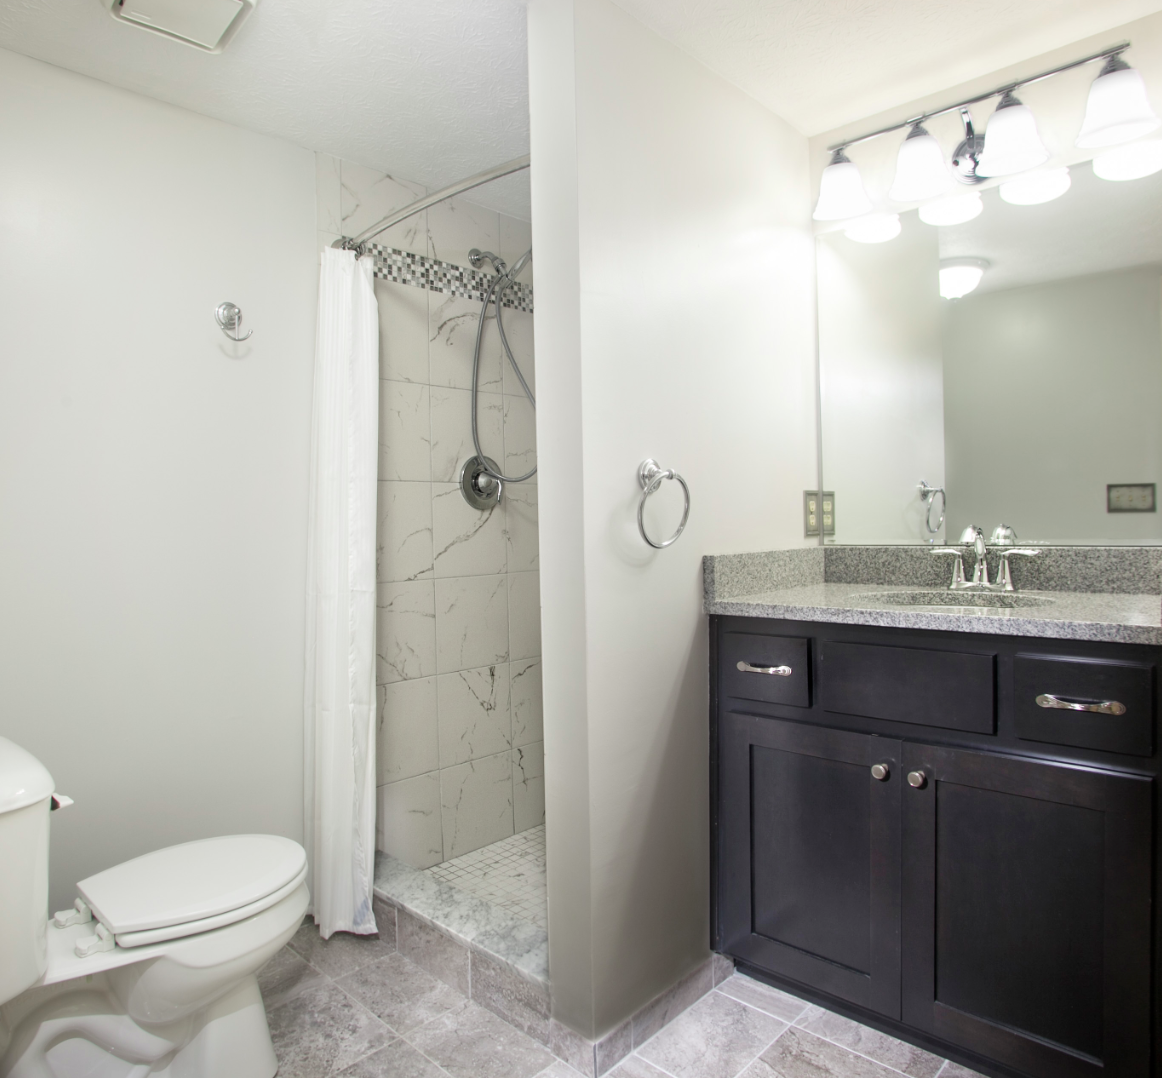 Flooring For Basement Bathroom: Basement Bathroom Remodel This Basement Shower Has A 12x12